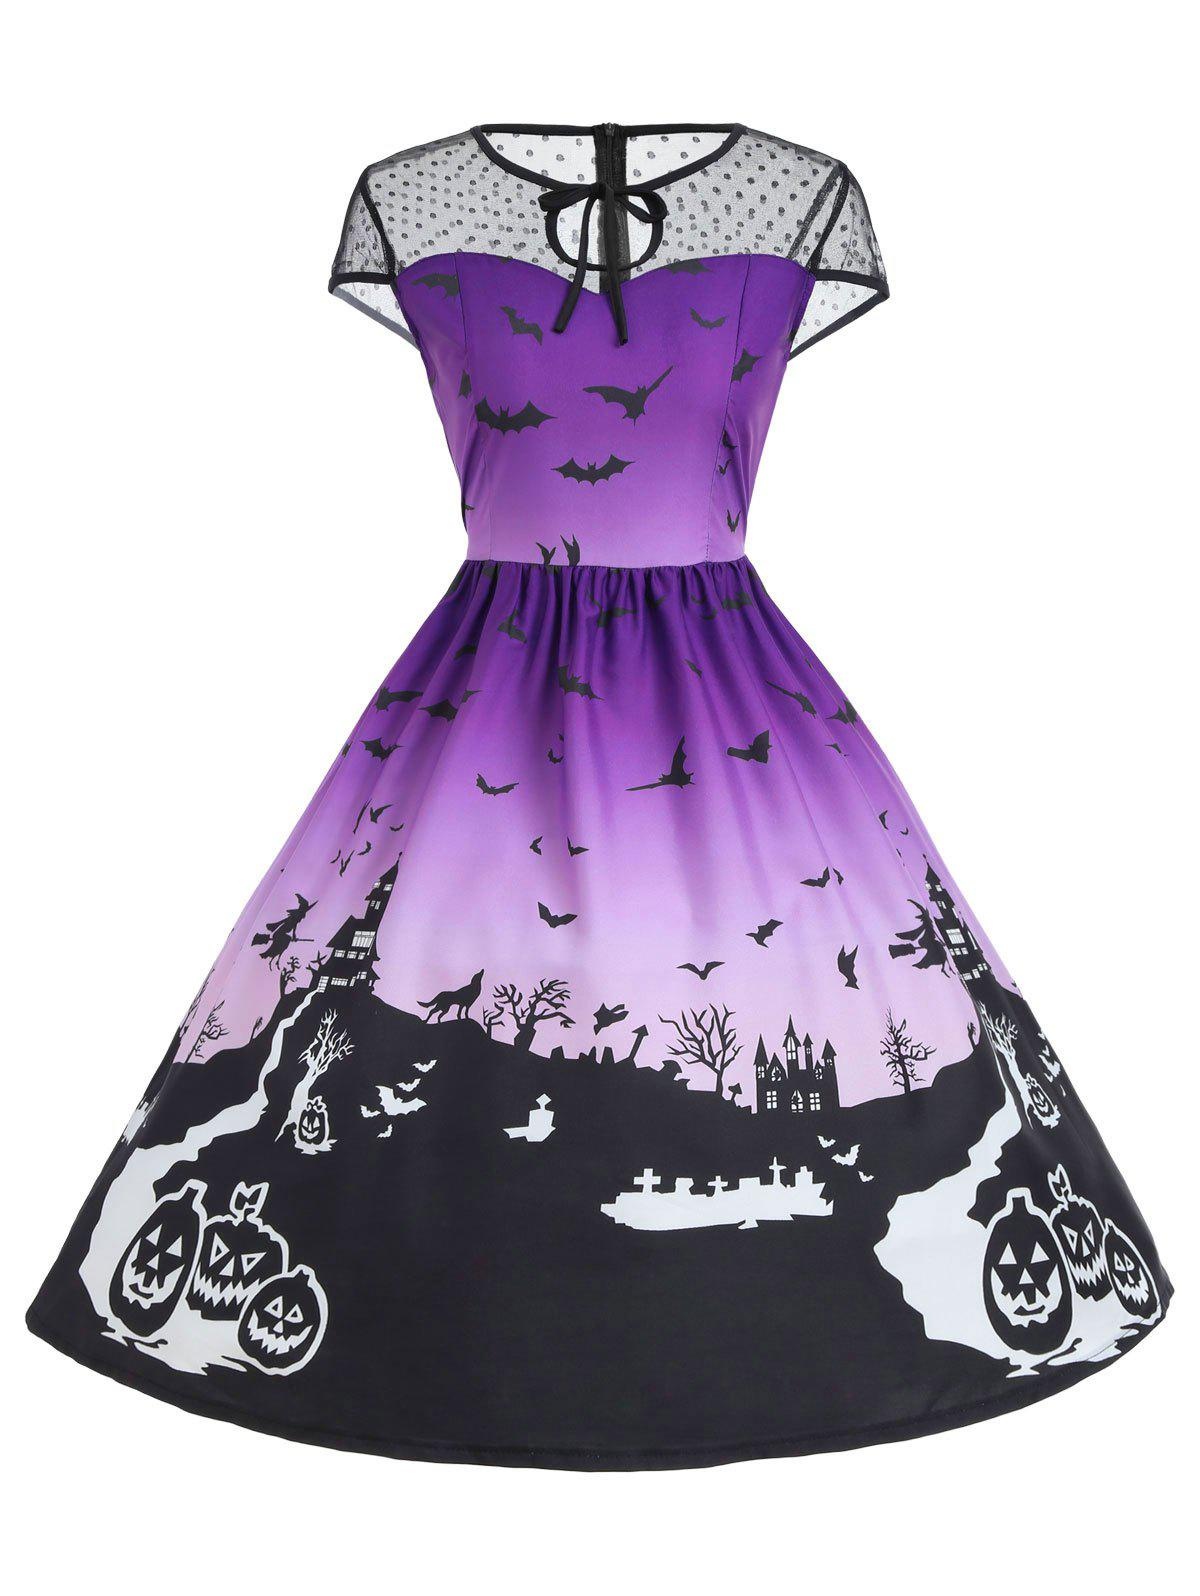 Vintage Mesh Panel Halloween A Line DressWOMEN<br><br>Size: XL; Color: PURPLE; Style: Novelty; Material: Cotton,Polyester; Silhouette: A-Line; Dresses Length: Knee-Length; Neckline: Keyhole Neck; Sleeve Length: Sleeveless; Embellishment: Lace; Pattern Type: Print; With Belt: No; Season: Fall,Spring,Summer; Weight: 0.2500kg; Package Contents: 1 x Dress;